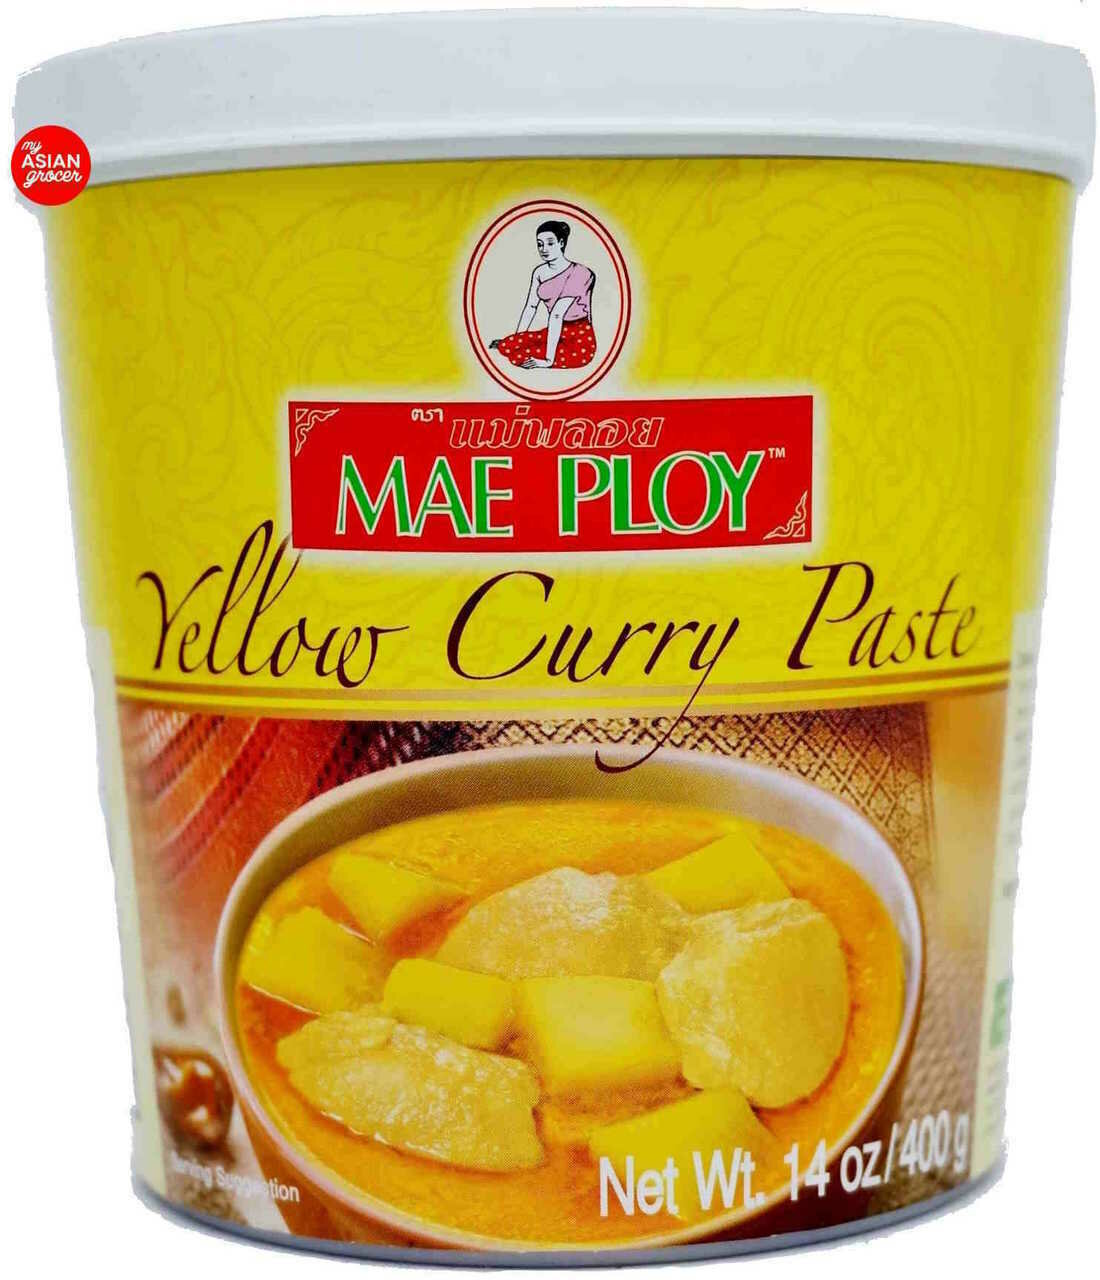 Mae Ploy Yellow Curry Paste (16 Oz)